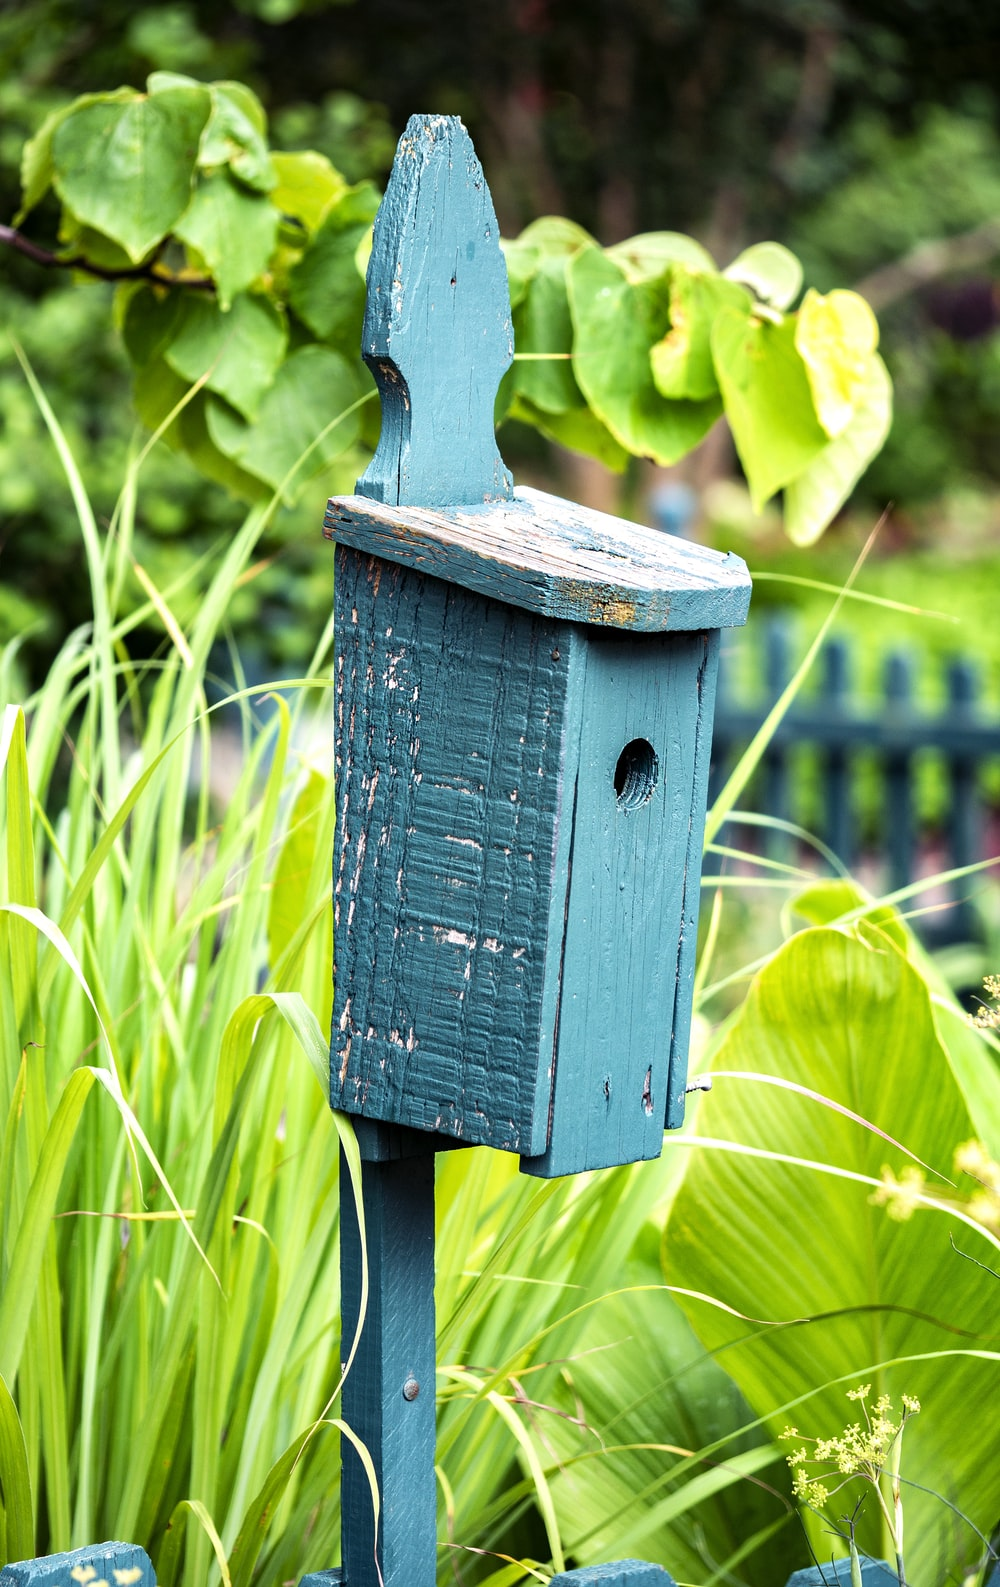 blue wooden birdhouse on green plant during daytime